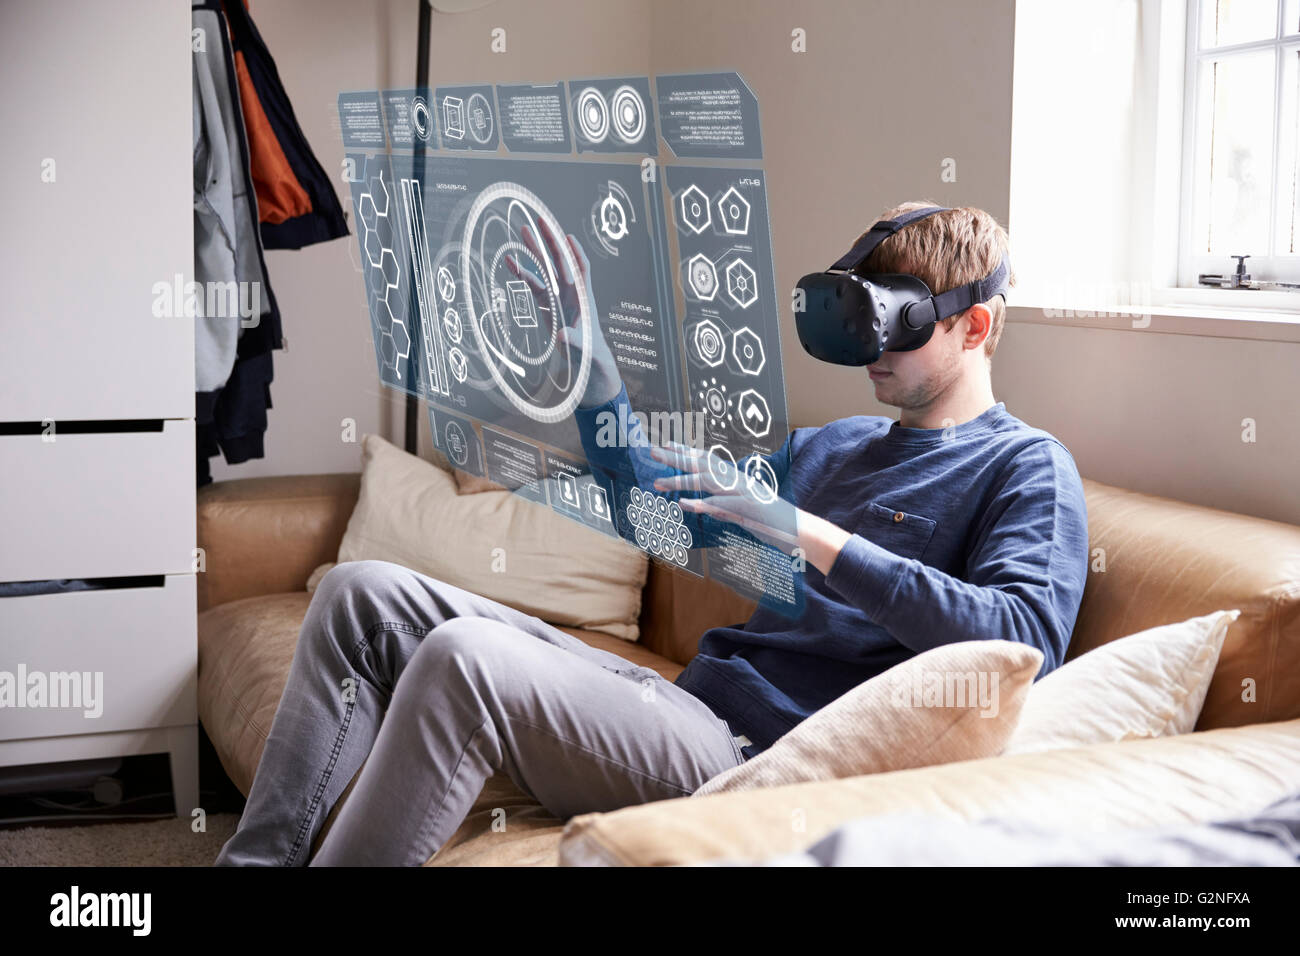 c1ece0e387d Man Sitting On Sofa At Home Wearing Virtual Reality Headset - Stock Image